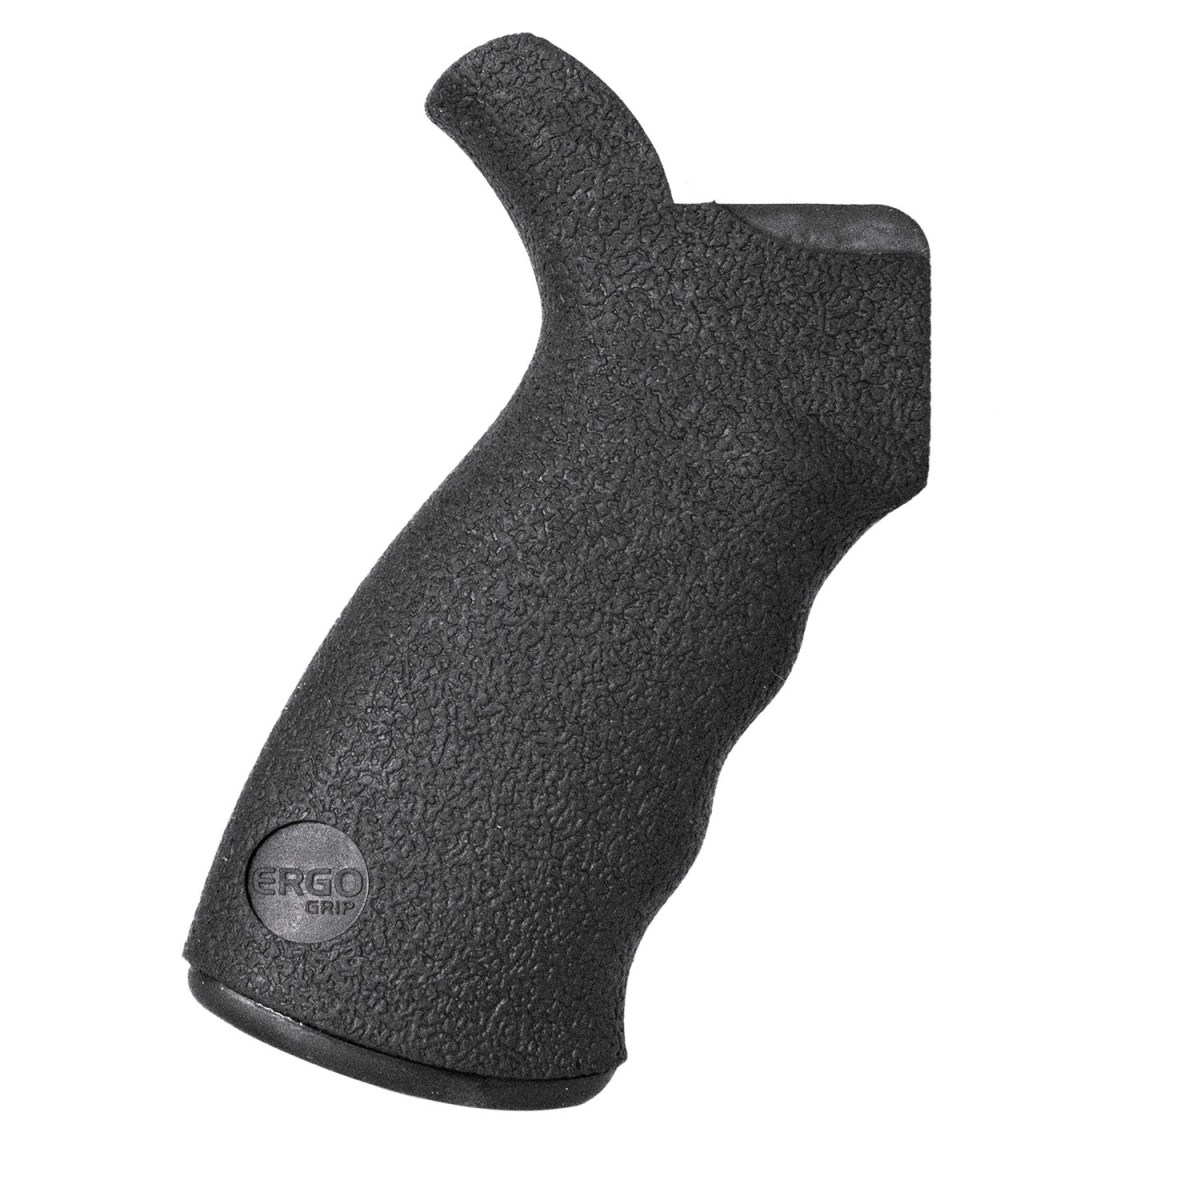 ORIGINAL ERGO GRIP AT (AGGRESSIVE TEXTURE) - SUREGRIP®